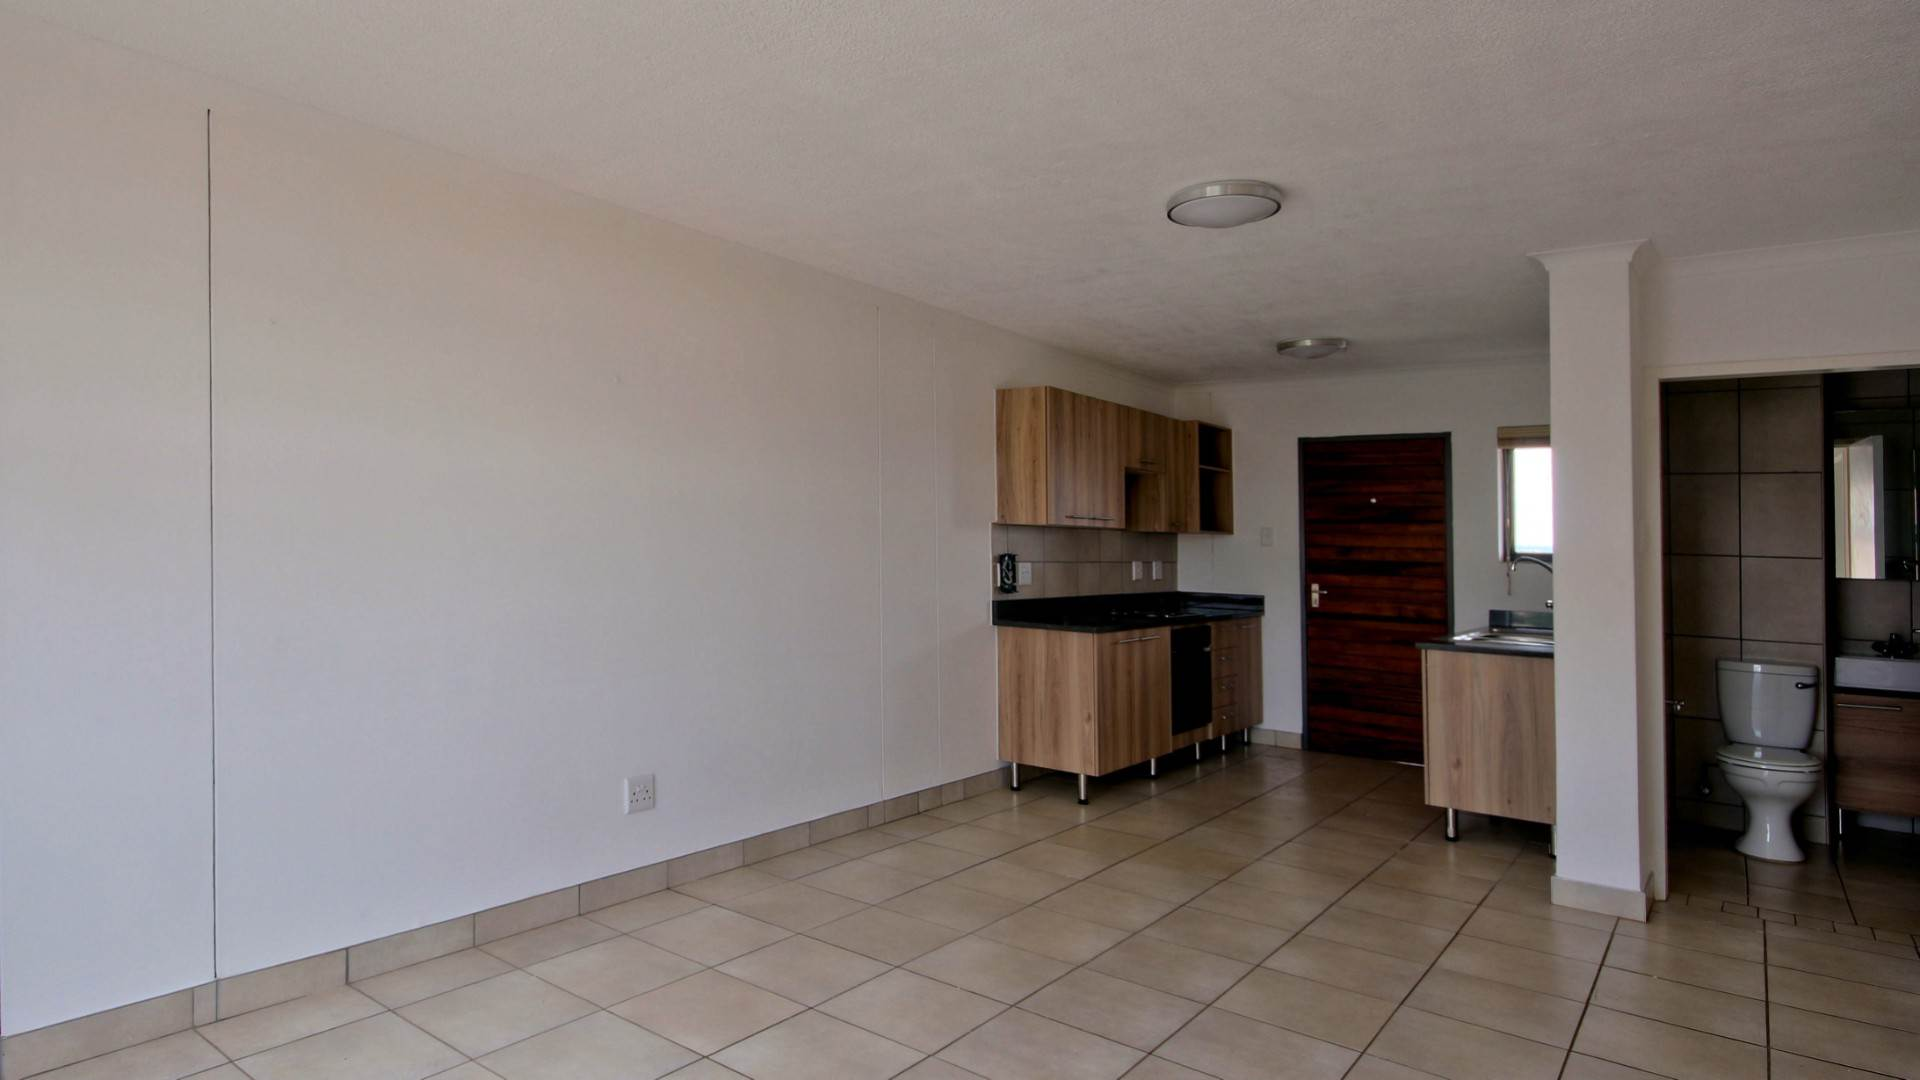 Centurion Central Apartment Rental Monthly In Centurion Central